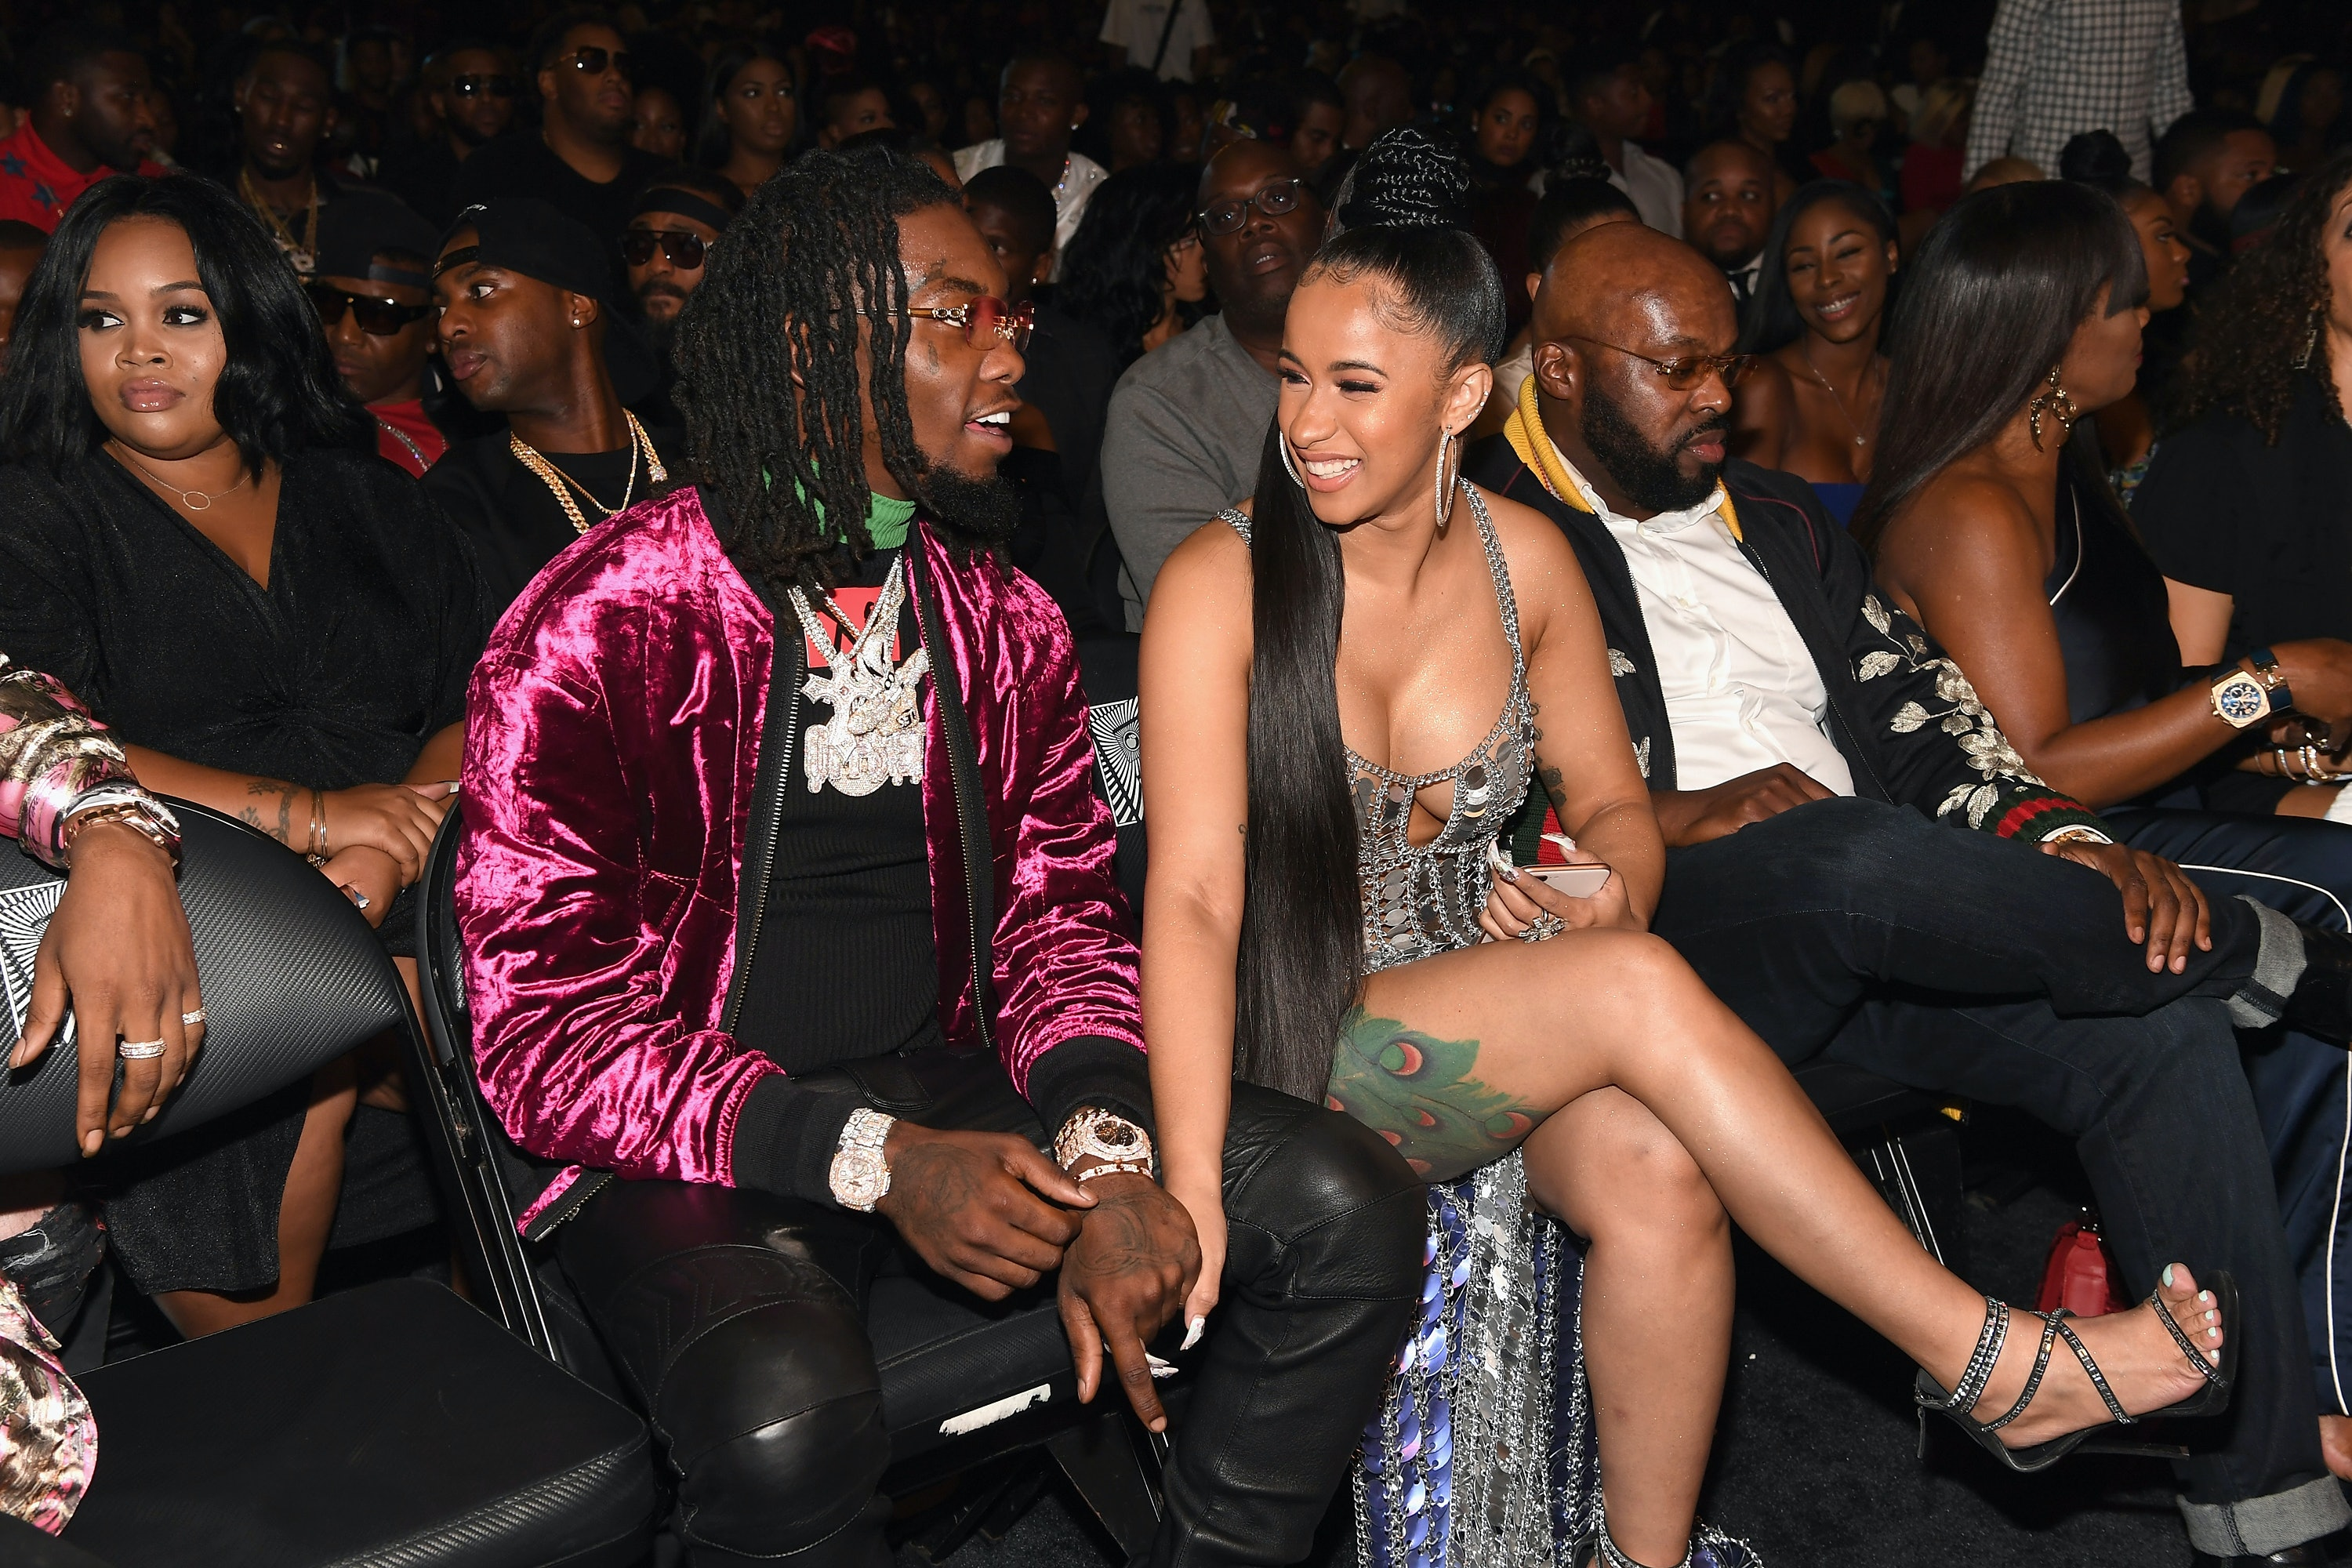 Sit Down, Get Comfy: Cardi B Has a Scary Story About That Time She Got Illegal Butt Injections